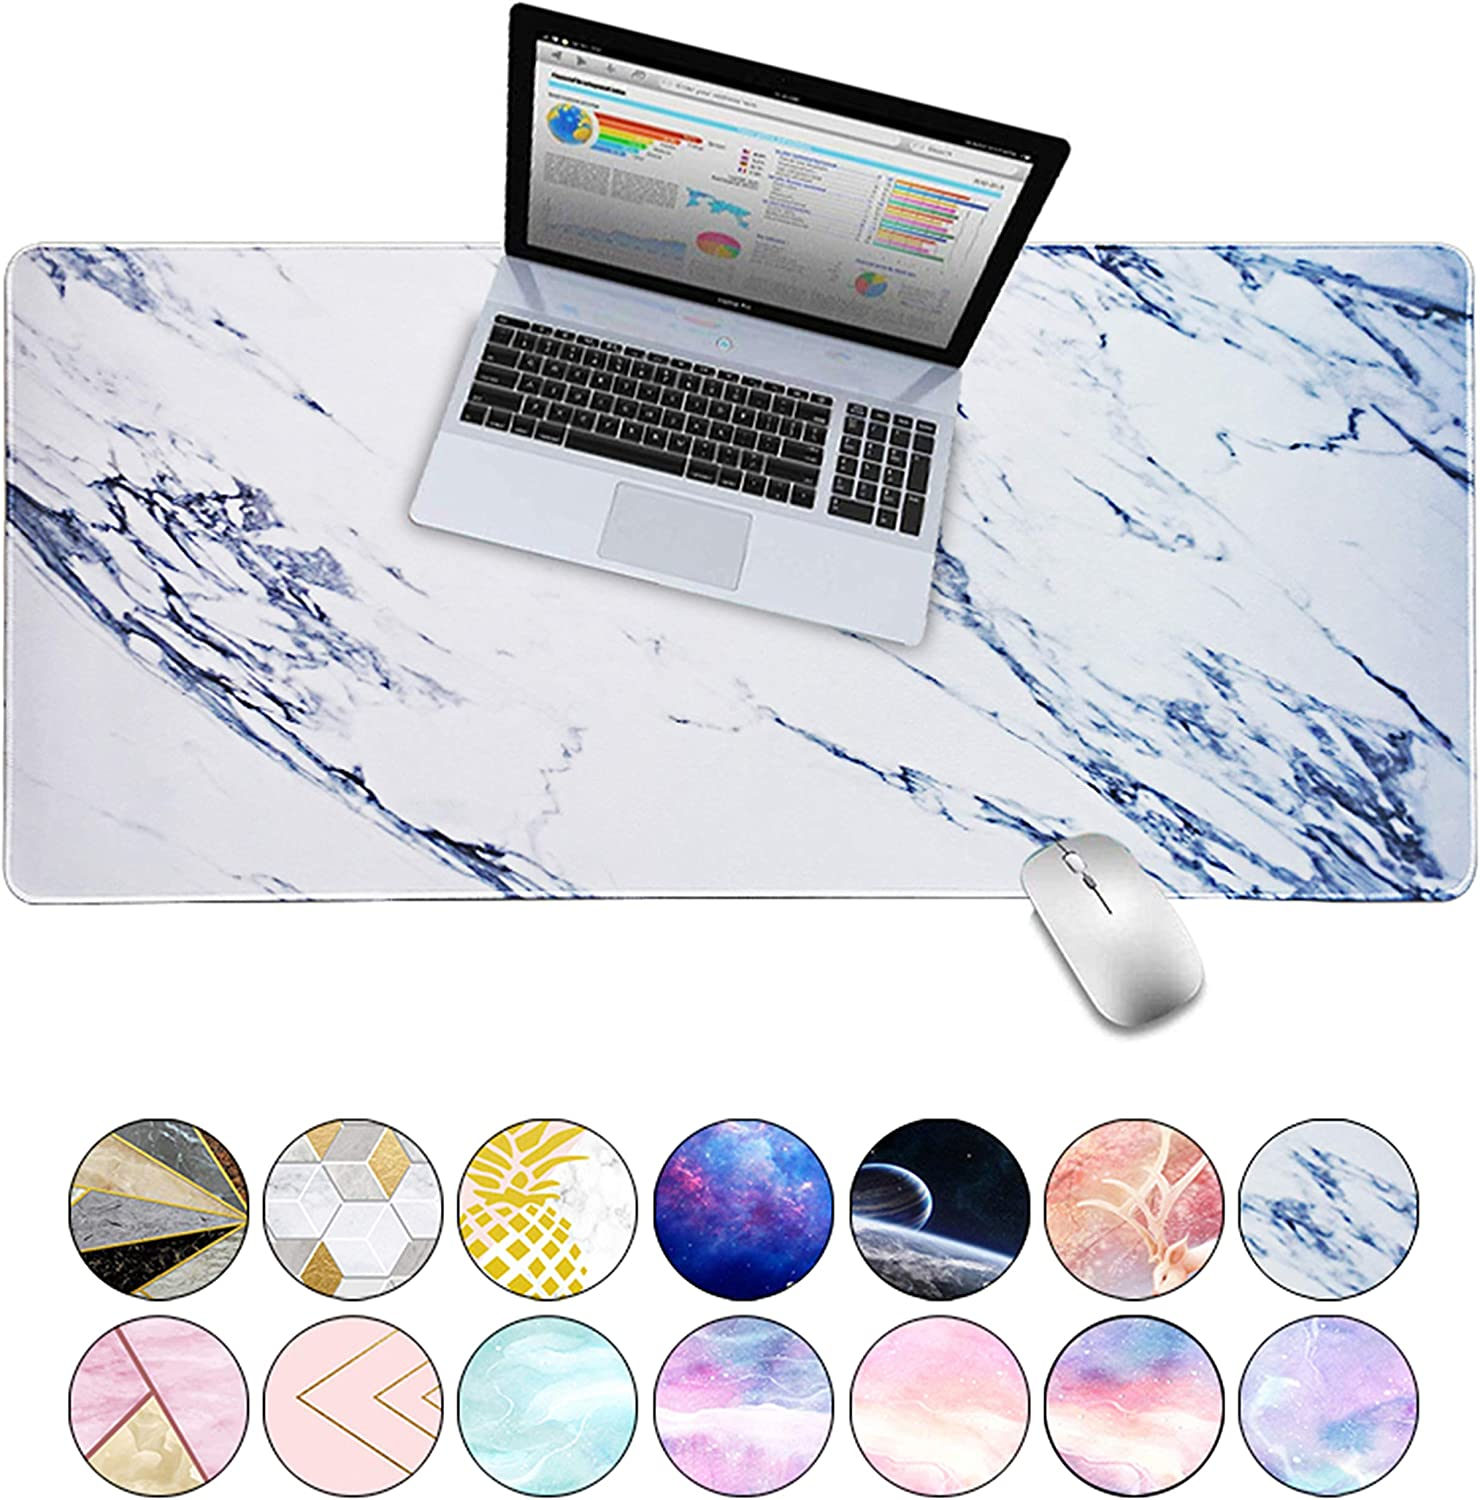 """LuvCase Desk Pad, Office Desk Mat, 31.5"""" x 15.7"""" PU Leather Desk Blotter, Laptop Desk Mat, Waterproof Desk Writing Pad for Office and Home Decor, Thick Gaming Mouse Pad (White Marble)"""